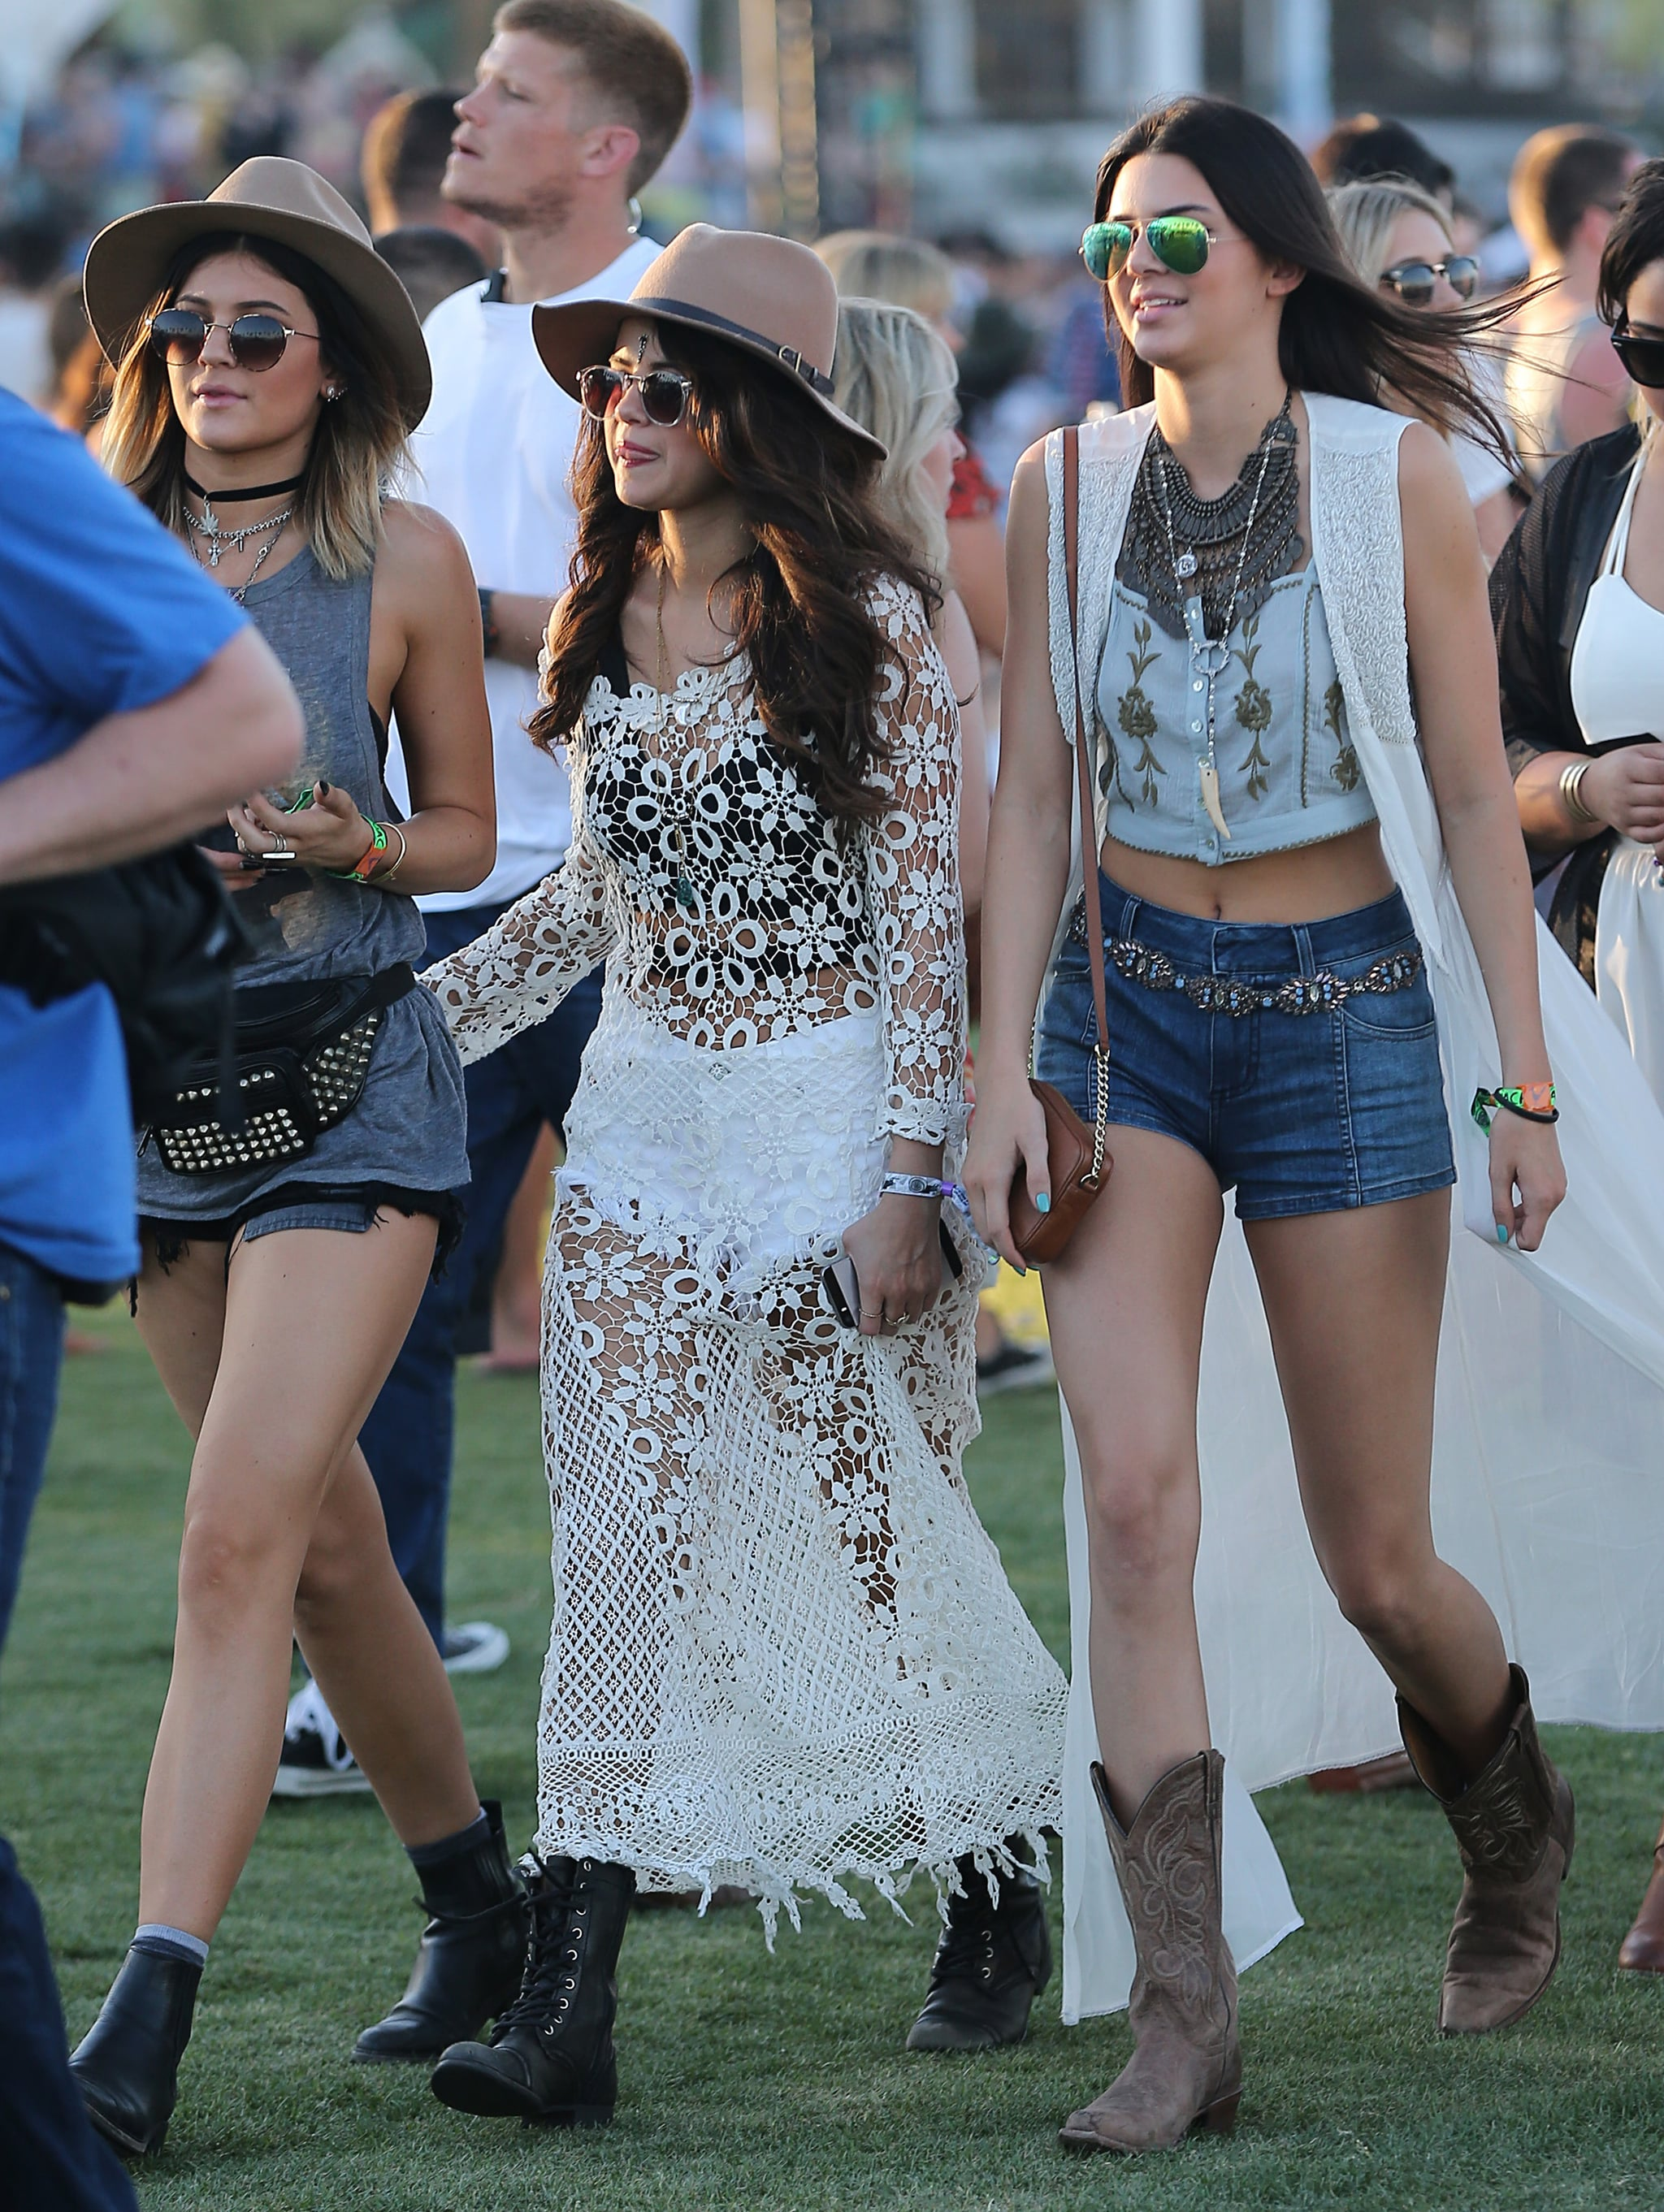 Kylie Jenner, Selena Gomez, and Kendall Jenner stayed close.